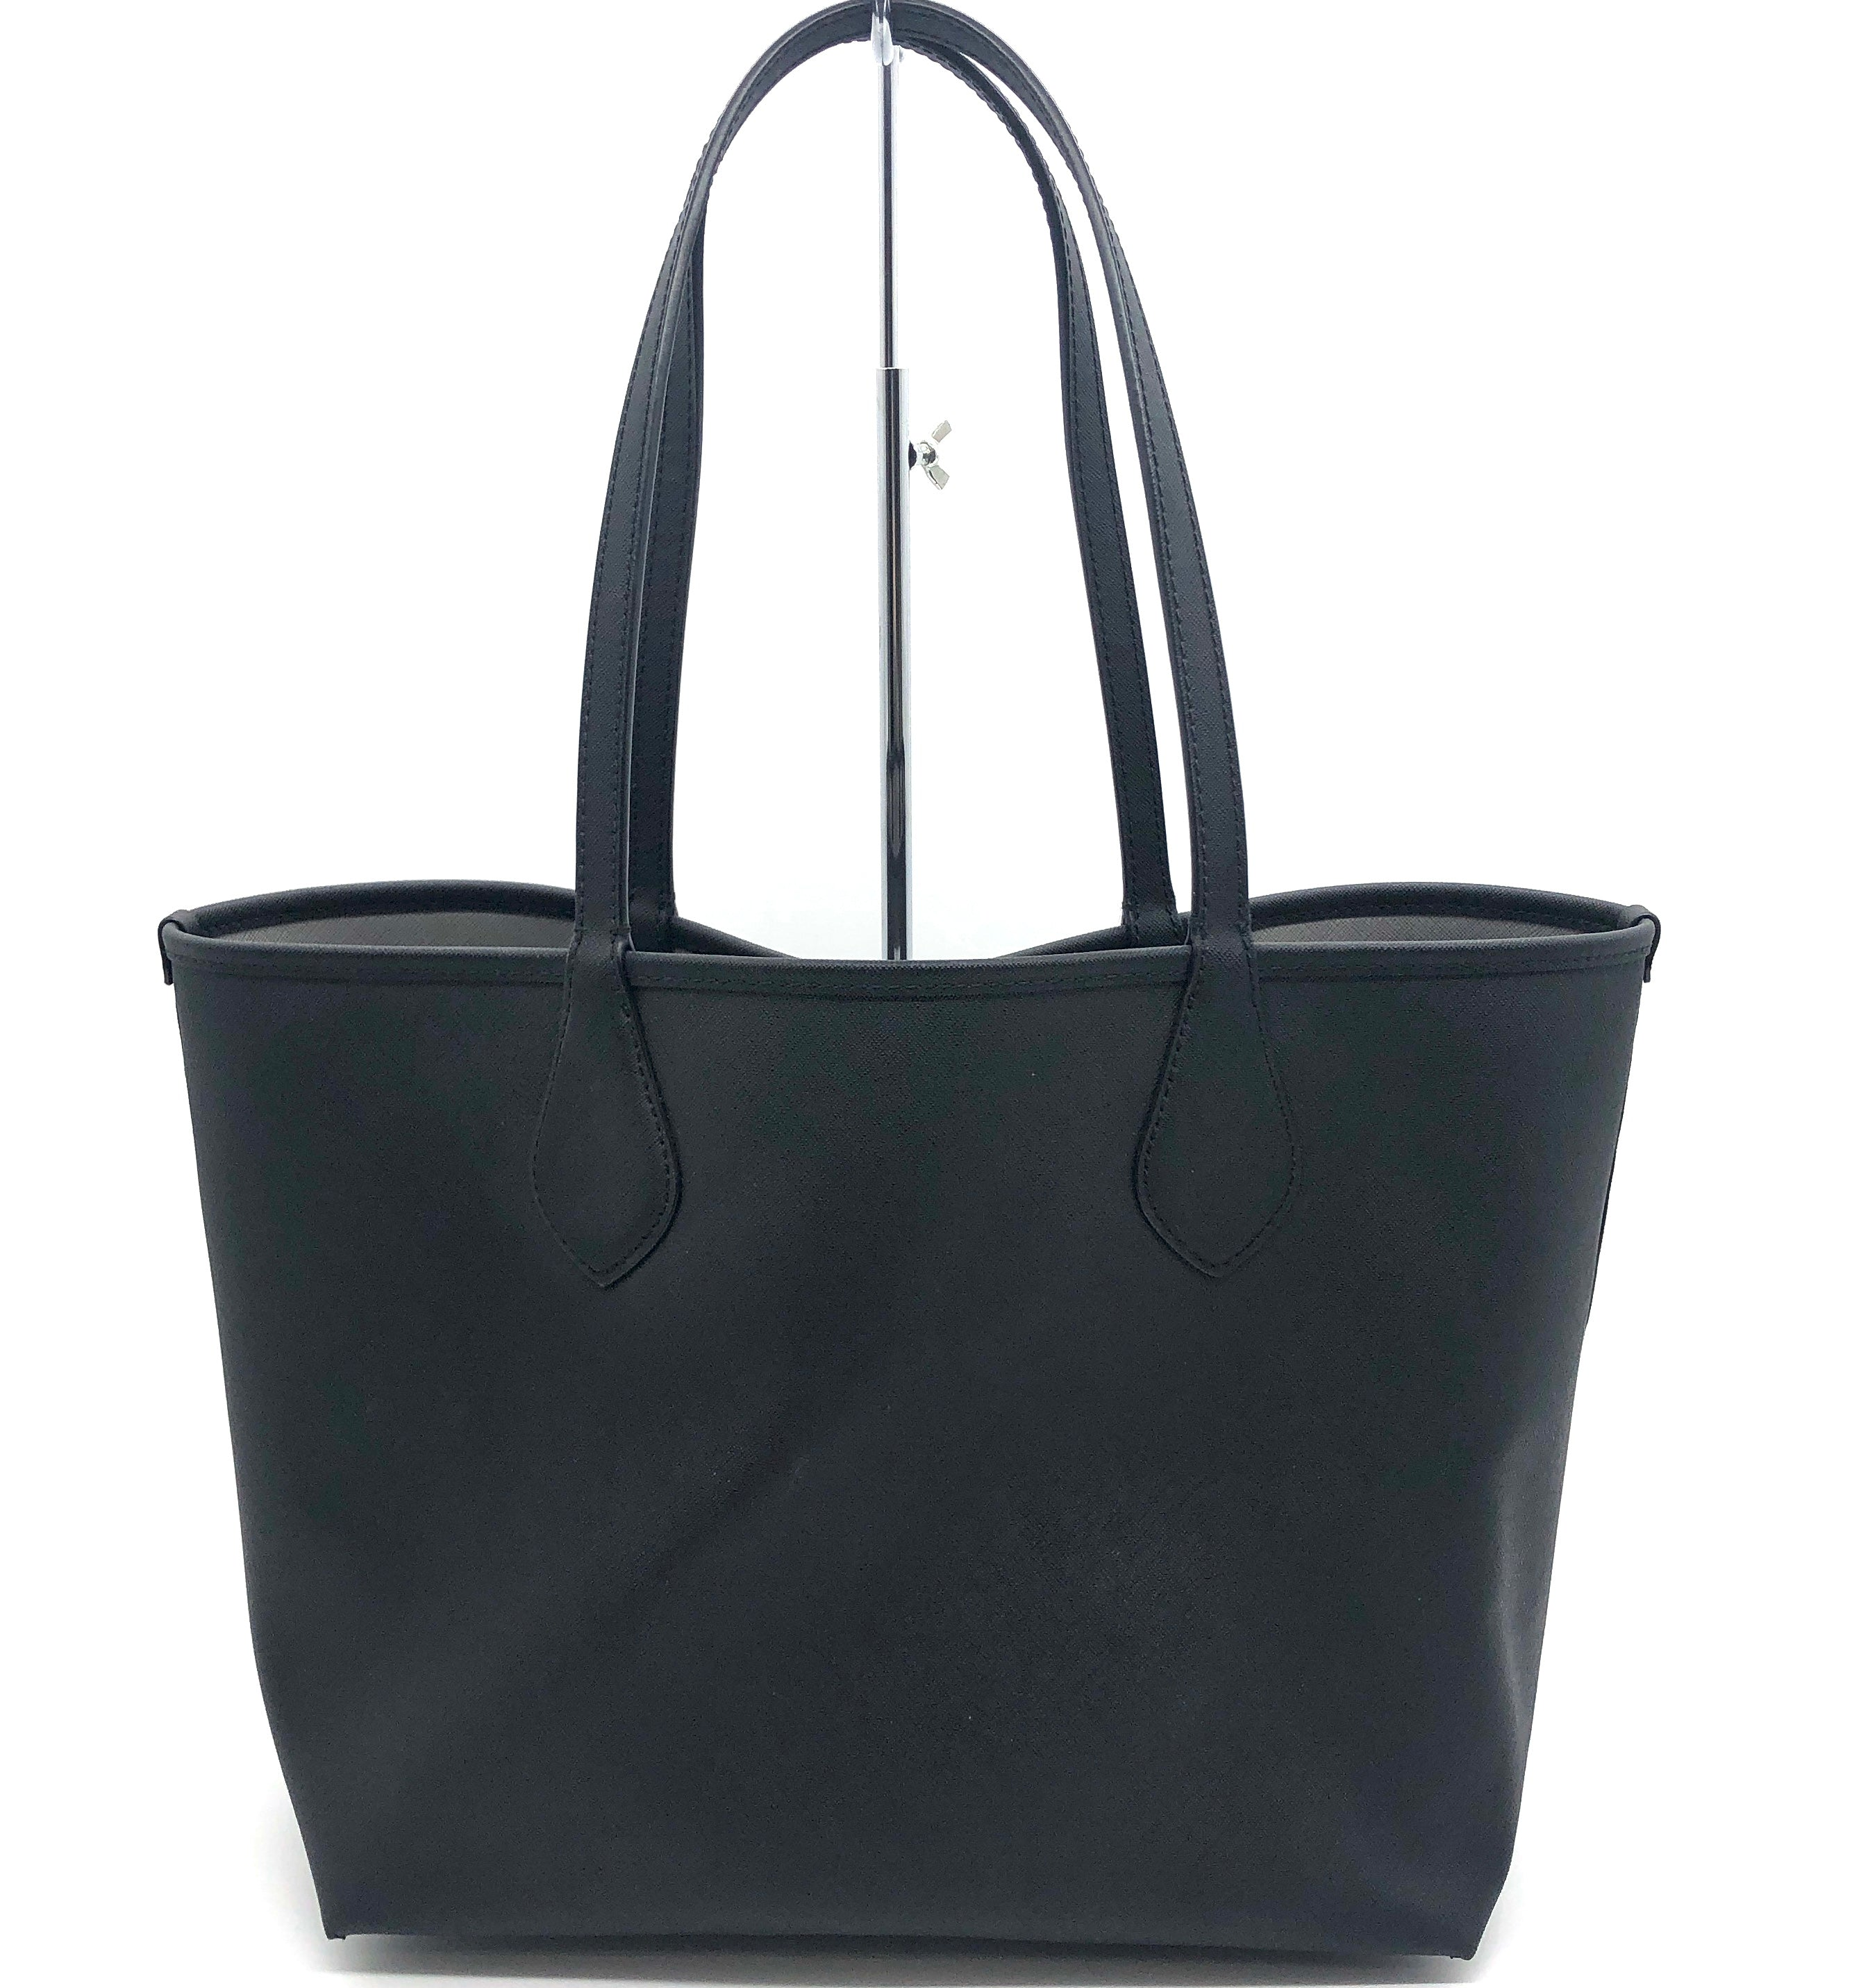 "Photo #1 - BRAND: MICHAEL KORS <BR>STYLE: HANDBAG REVERSIBLE <BR>COLOR: BLACK  GREY <BR>SIZE: MEDIUM <BR>SKU: 262-26275-75789<BR>AS IS WEAR ON CORNERS , SLIGHT MARKS, SPOTS ON GREY SIDE <BR>APPROX 10""X11""X6.5"""